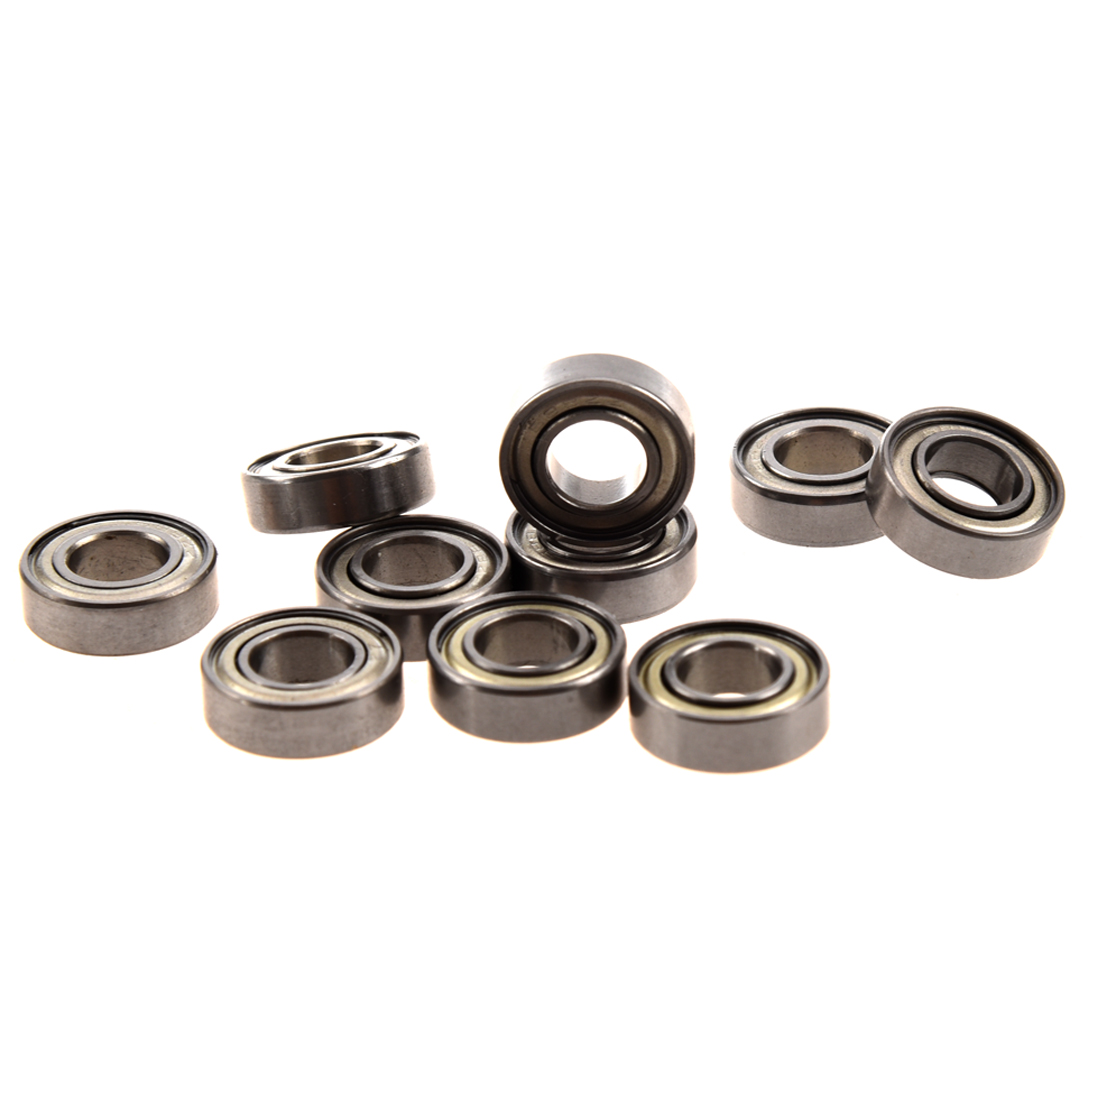 10 Pcs 698Z 8 x 19 x6mm Single Row Sealed Deep Groove Ball Bearings